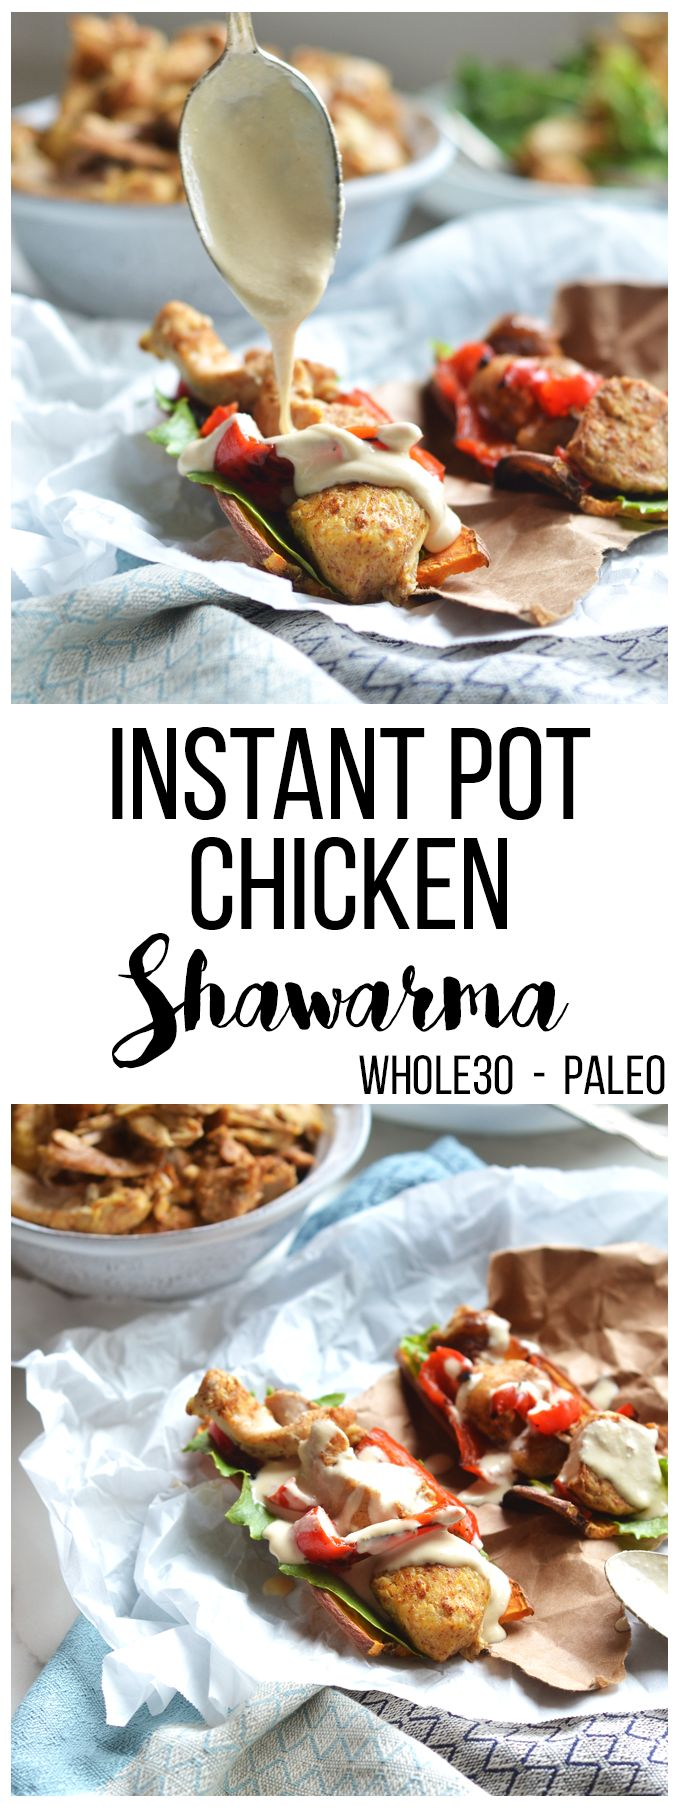 This instant pot chicken shawarma is packed with flavor, whole30, paleo and can be made in a slow cooker!